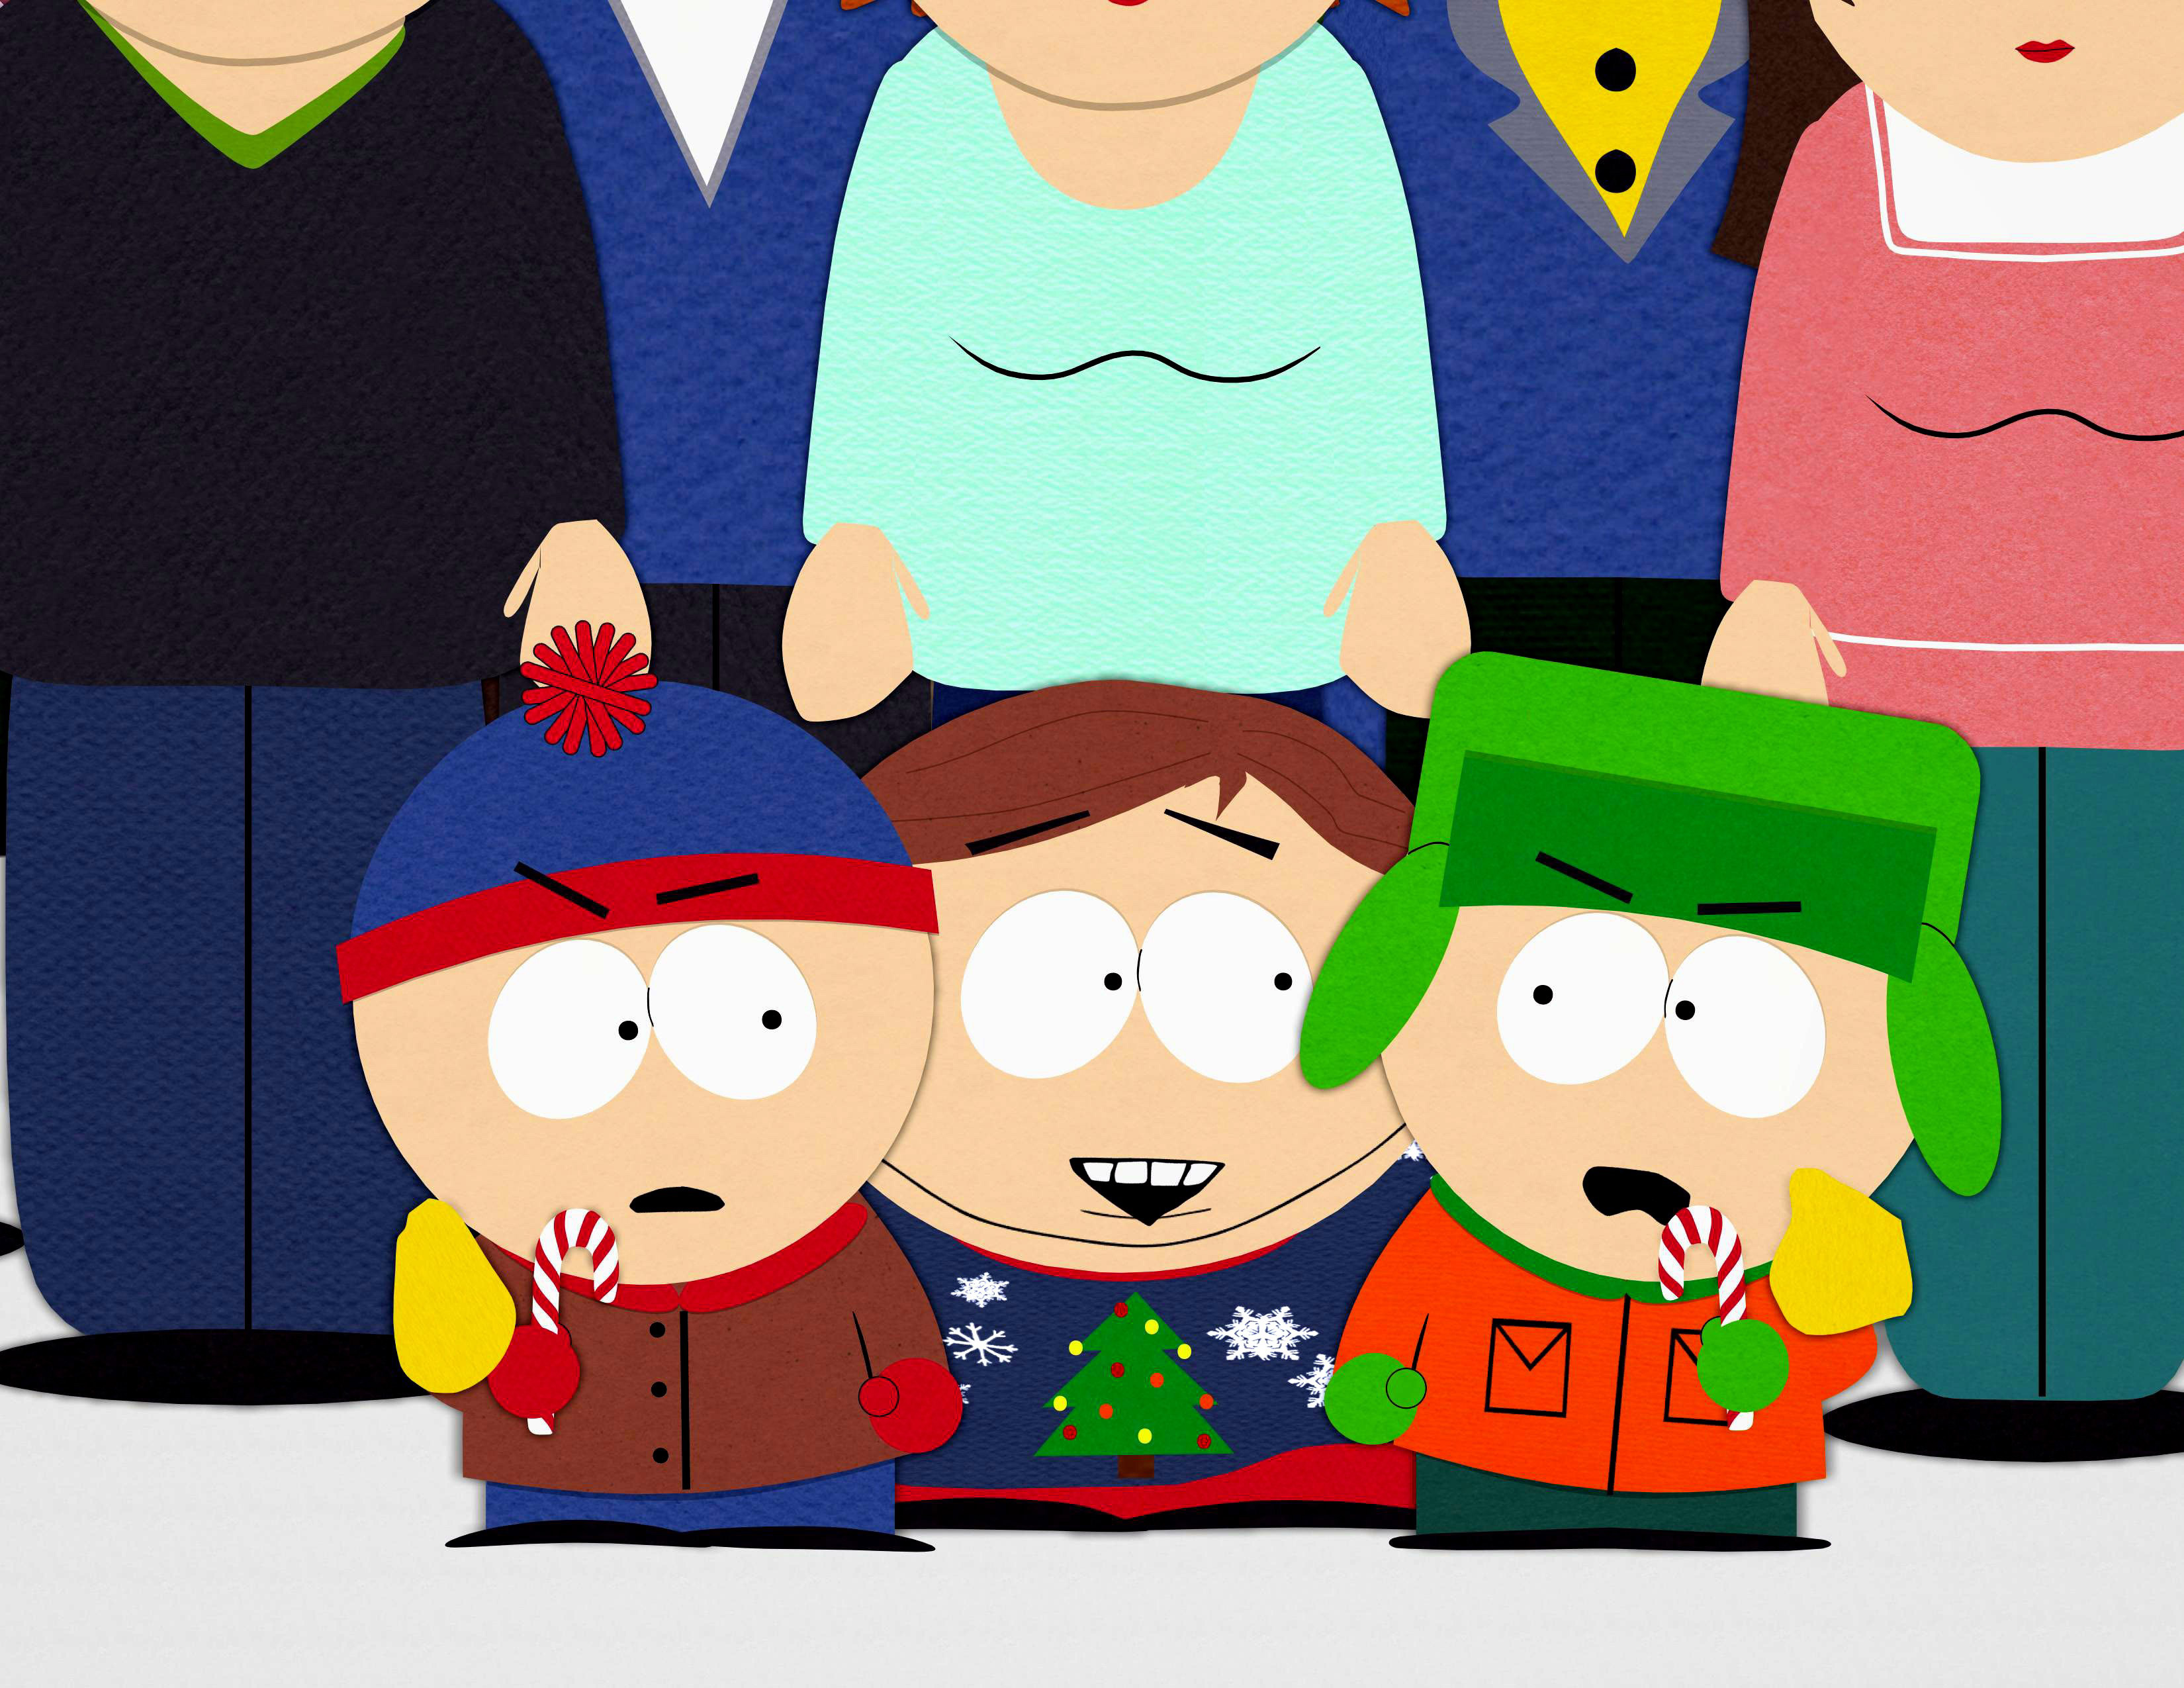 South Park Christmas.Christmas Image Gallery South Park News